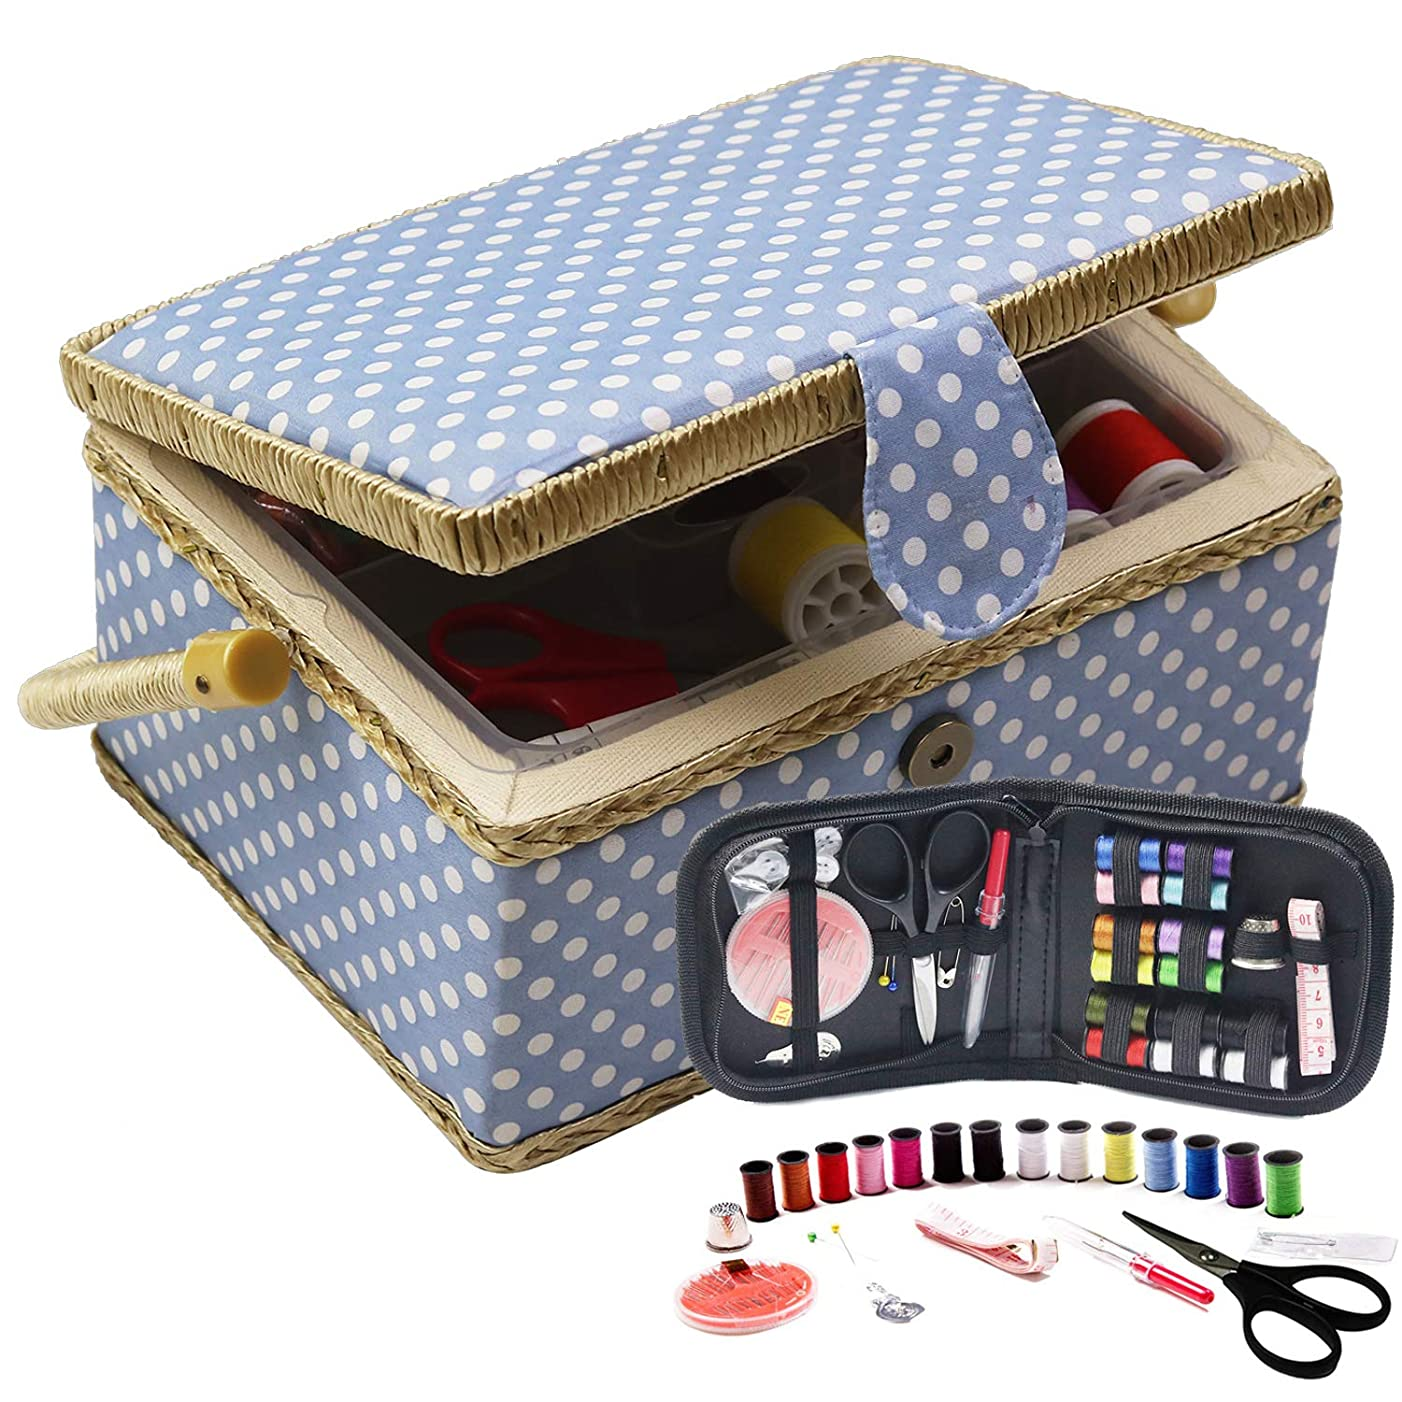 Medium Sewing Box with Travel Kit Sewing Basket Organizer with Accessories DIY Sewing Supplies Sewing Kits for Adults, Blue